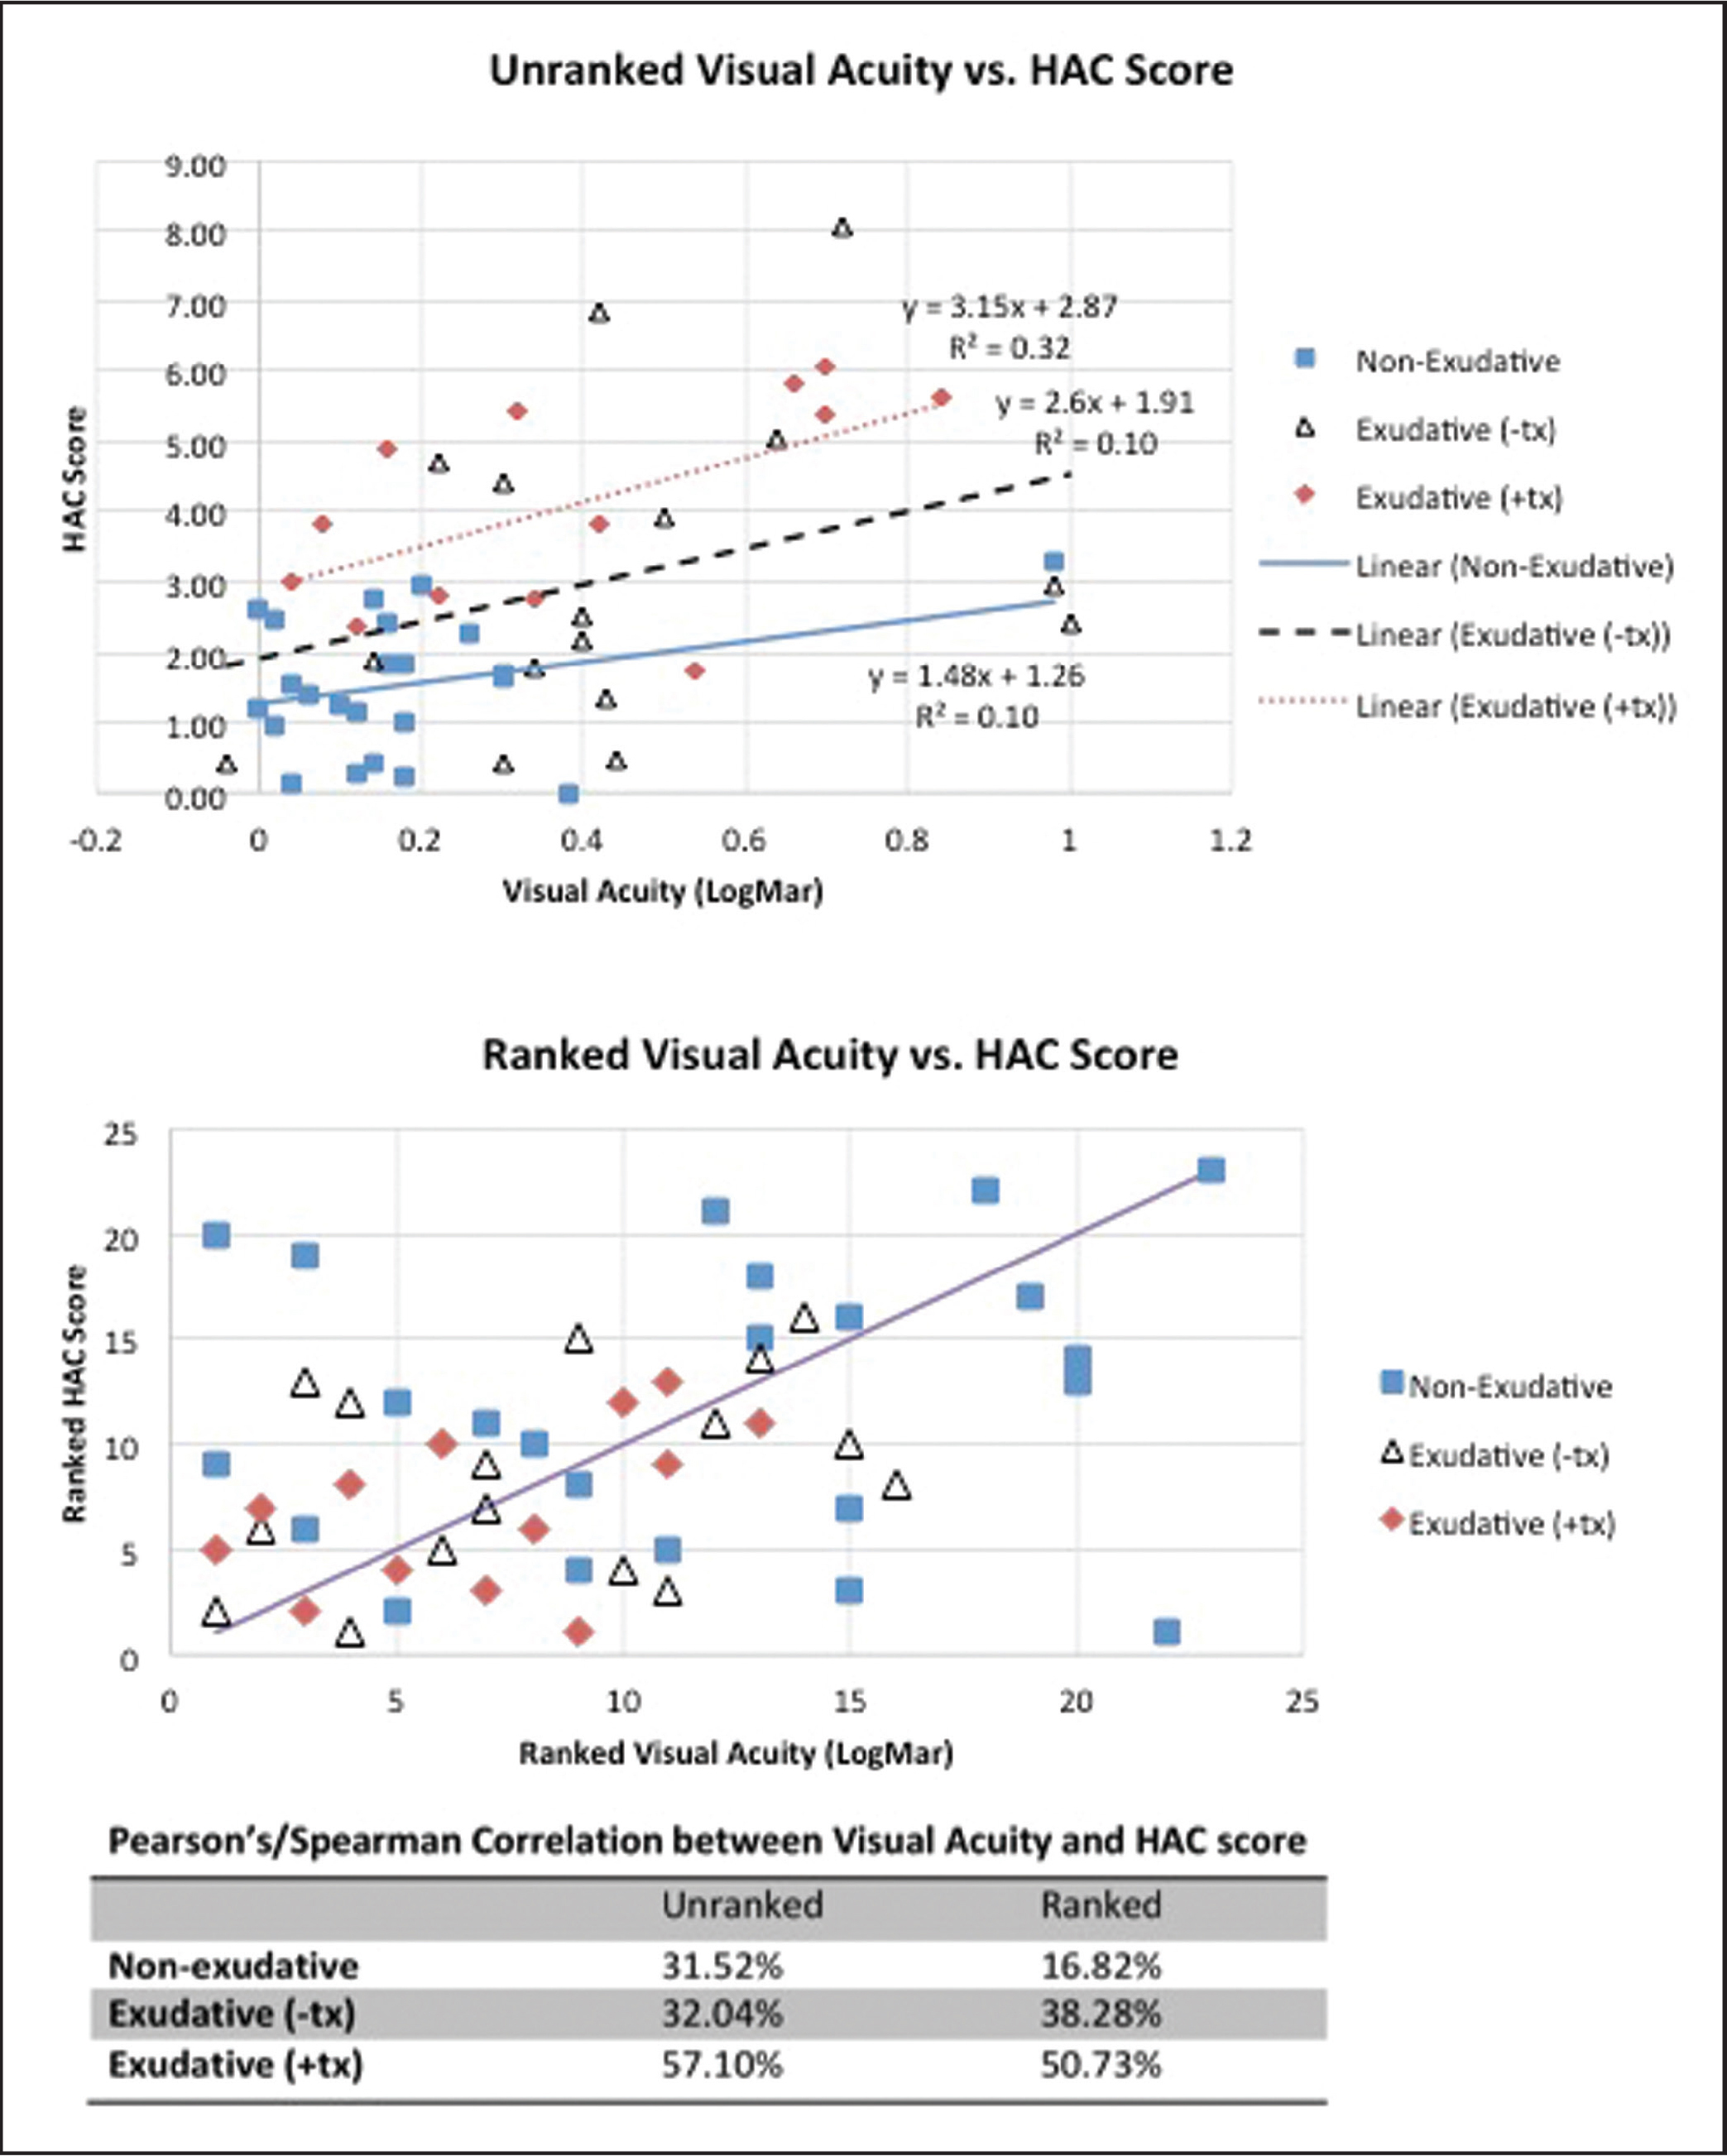 Linear regression analysis of visual acuity versus Hyperacuity App (HAC) score. Unranked analysis above, ranked analysis below. Dotted red line = exudative (+tx); dotted black line = exudative (−tx); solid blue line = nonexudative. Ranked analysis (below) shows range of ranked HAC scores around a line of perfect correlation. Pearson's and Spearman's correlation numbers are shown at the bottom.